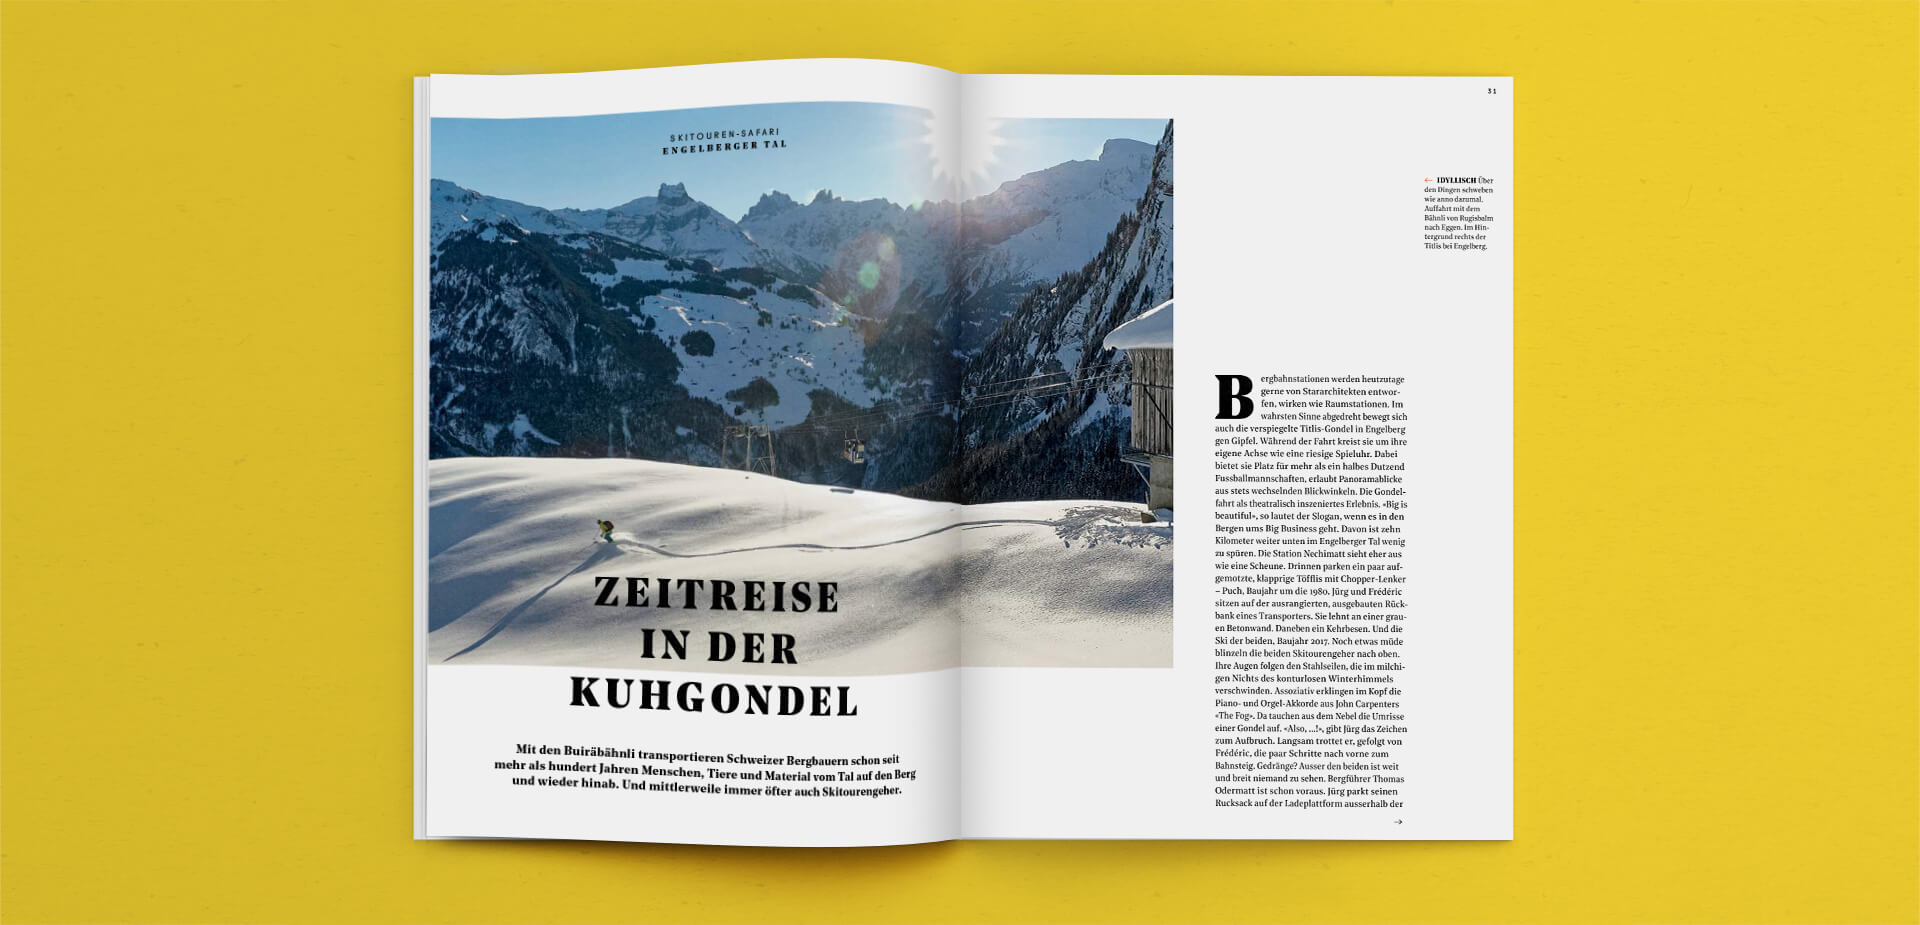 Fullsize Photography Spread in the Outdoor Guide Magazine